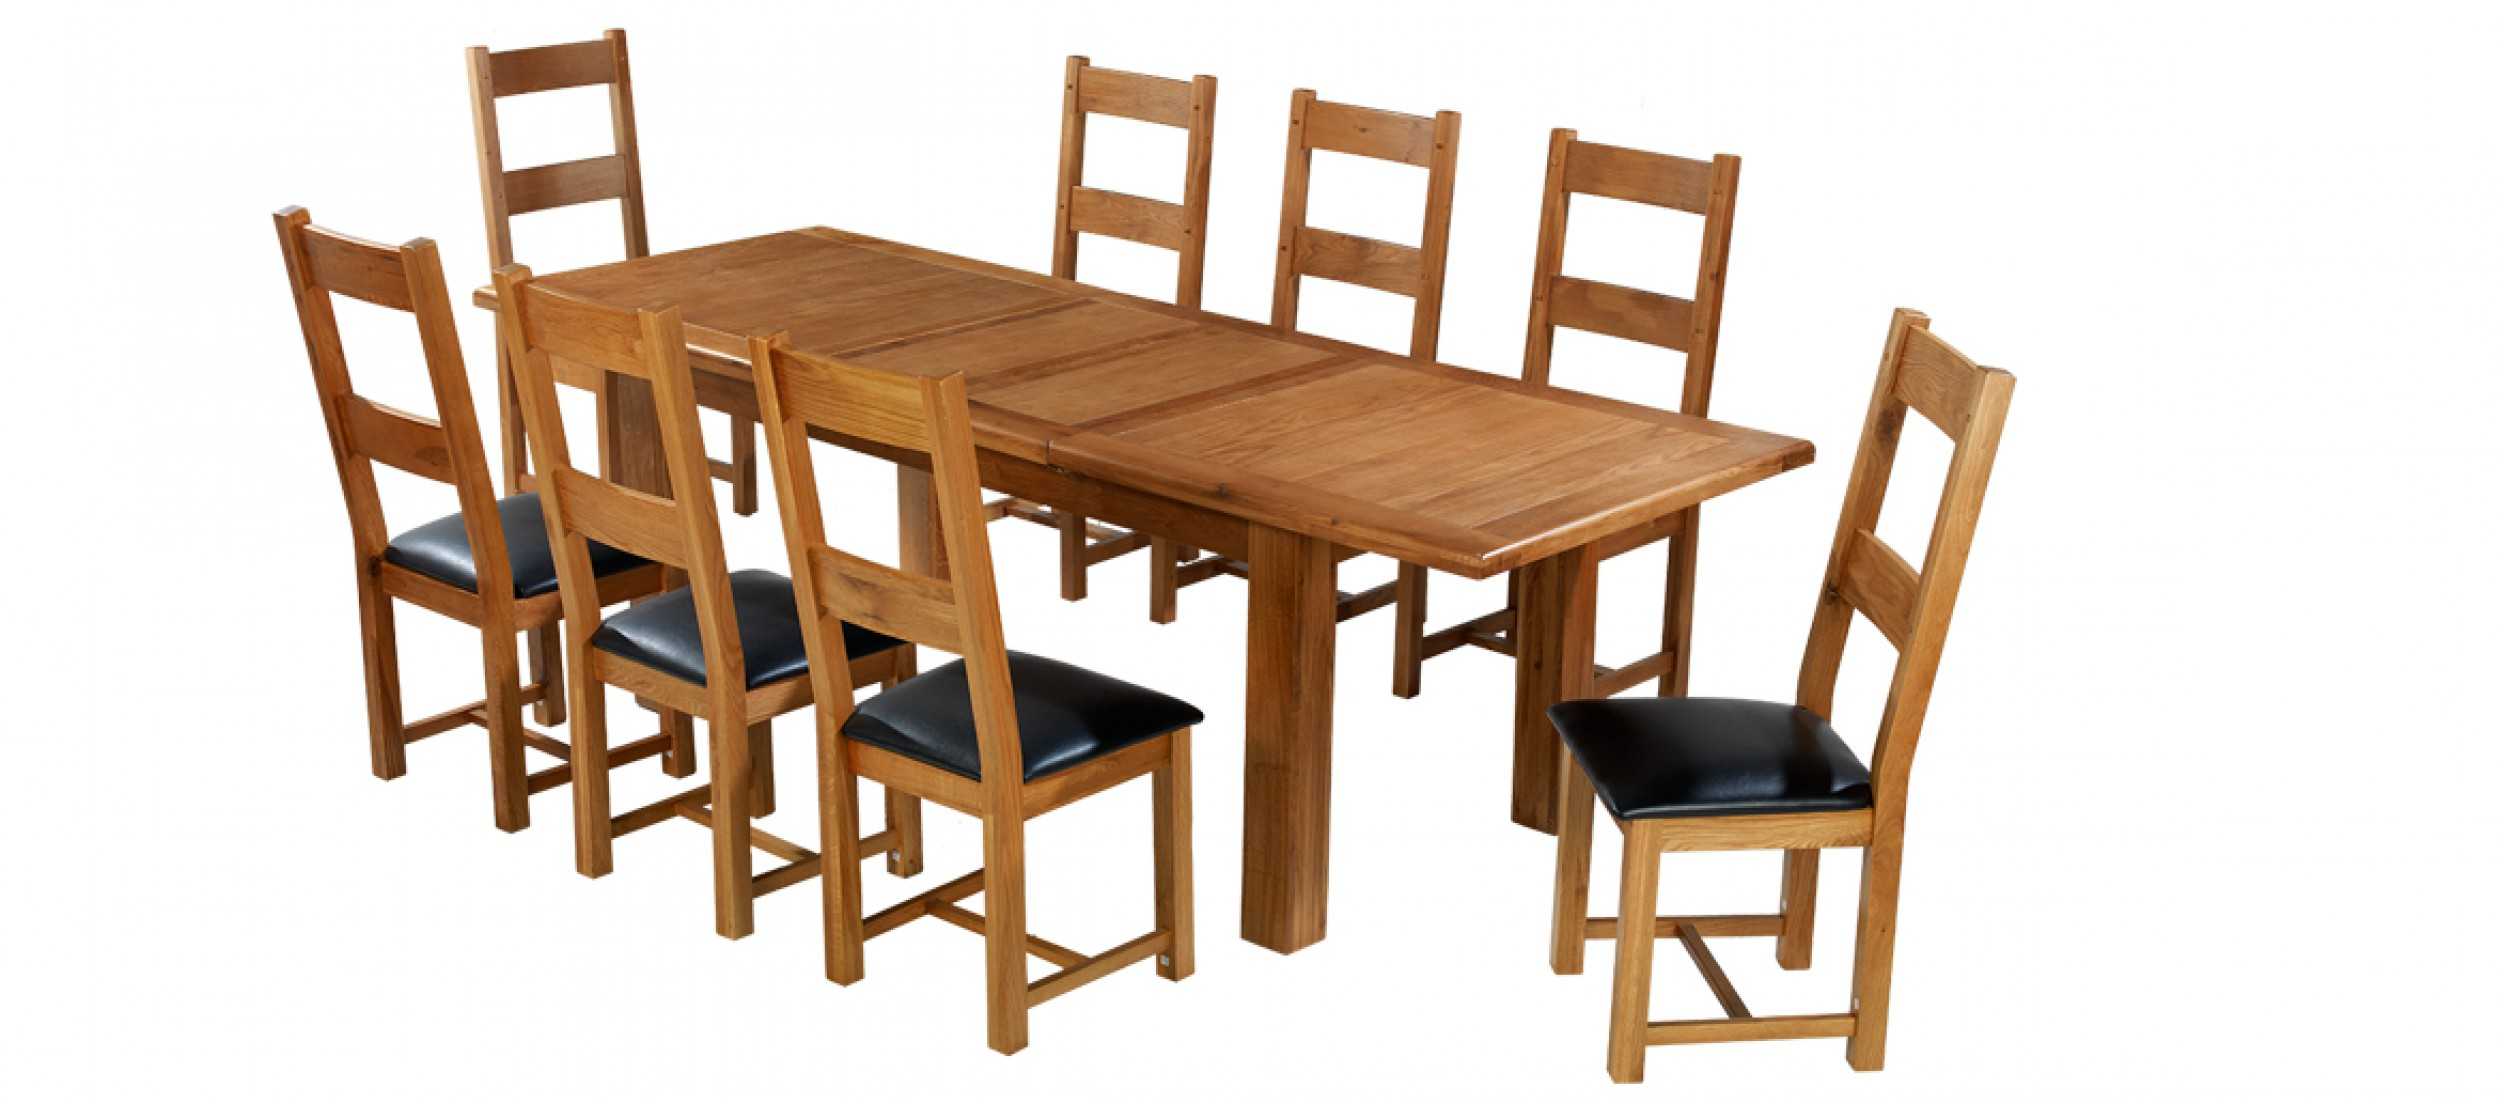 Barham oak 180 250 cm extending dining table and 8 chairs for 8 chair dining table